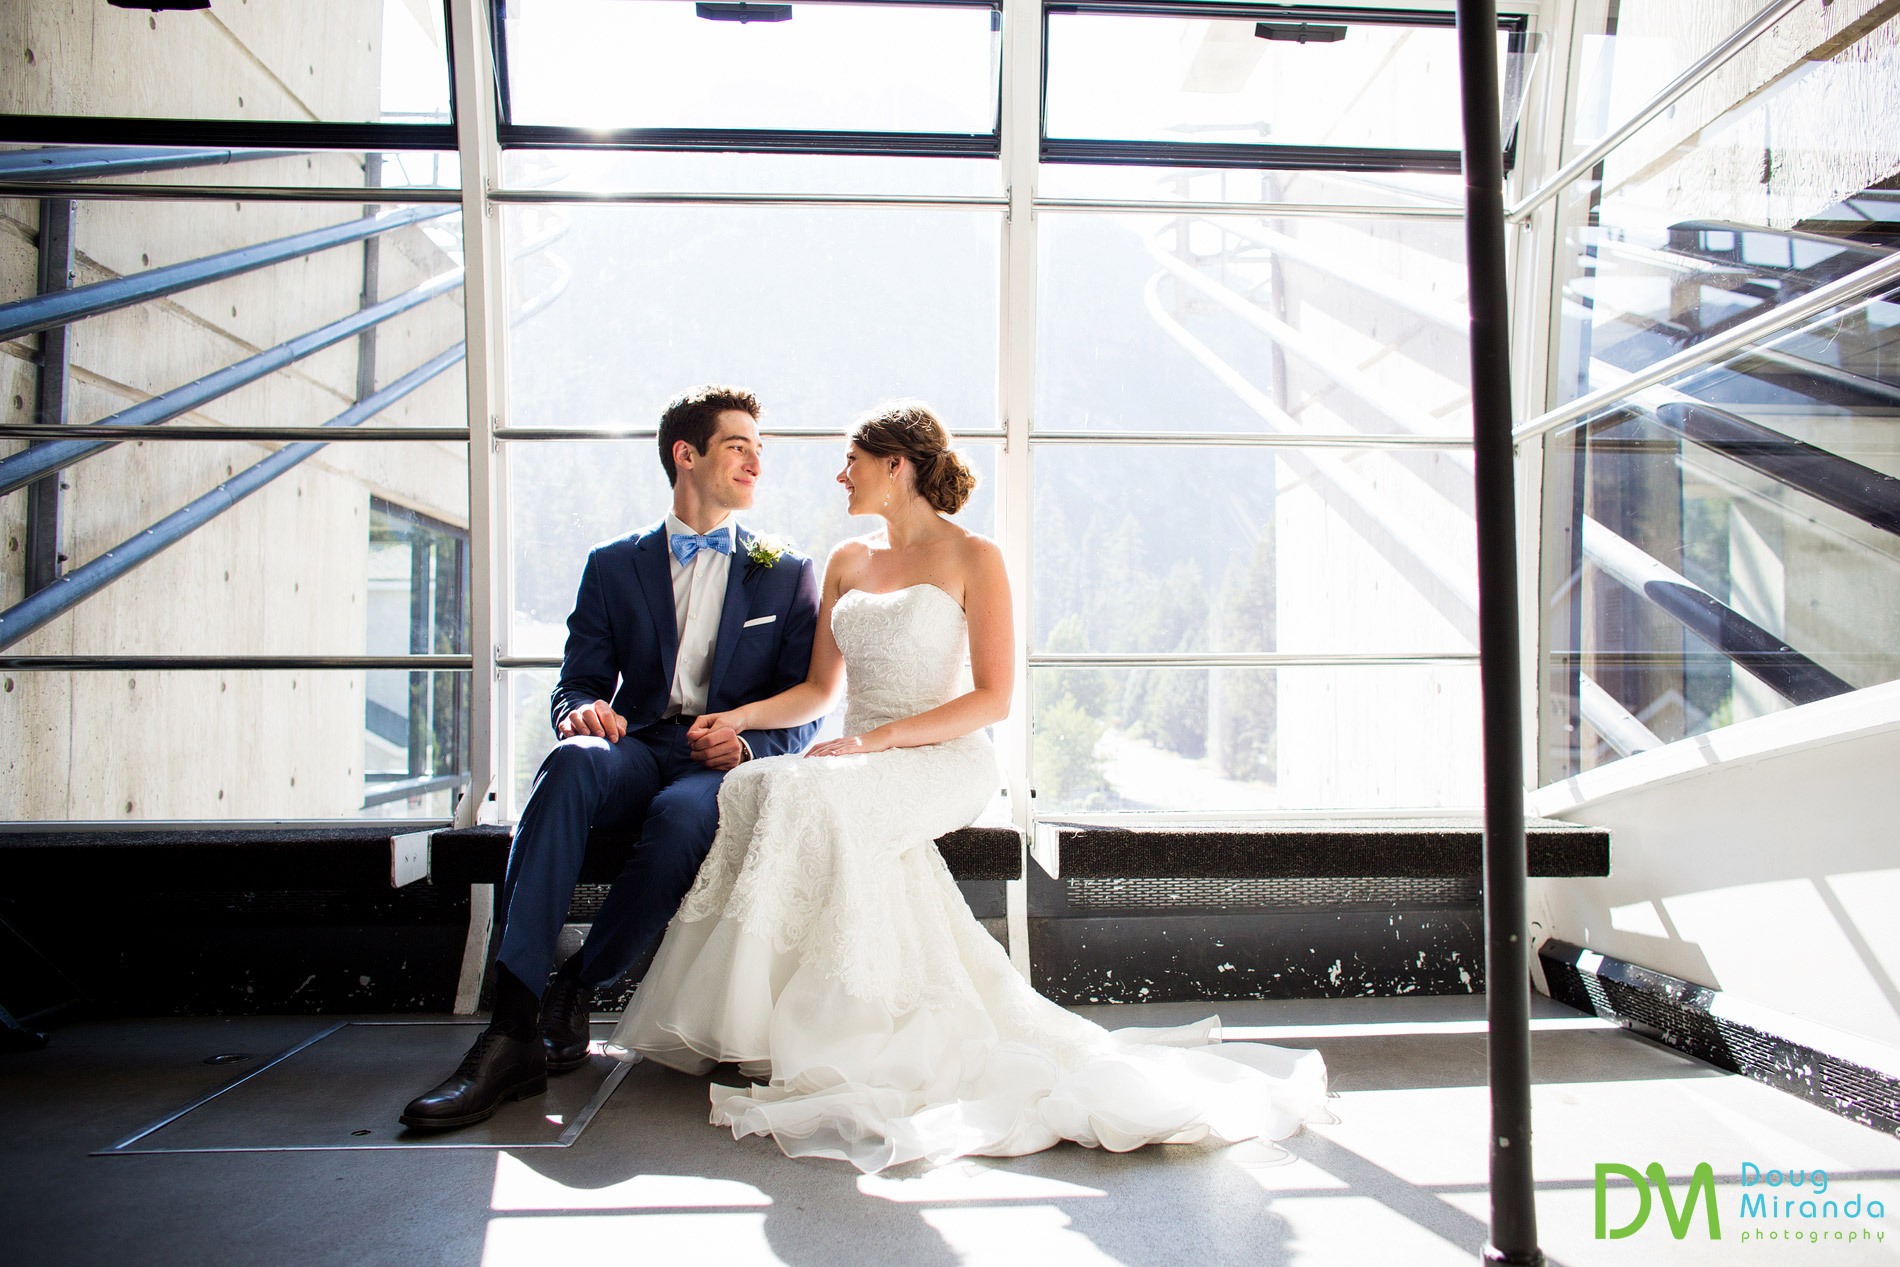 It was super fun to take the Squaw Valley tram ride up to their ceremony site.